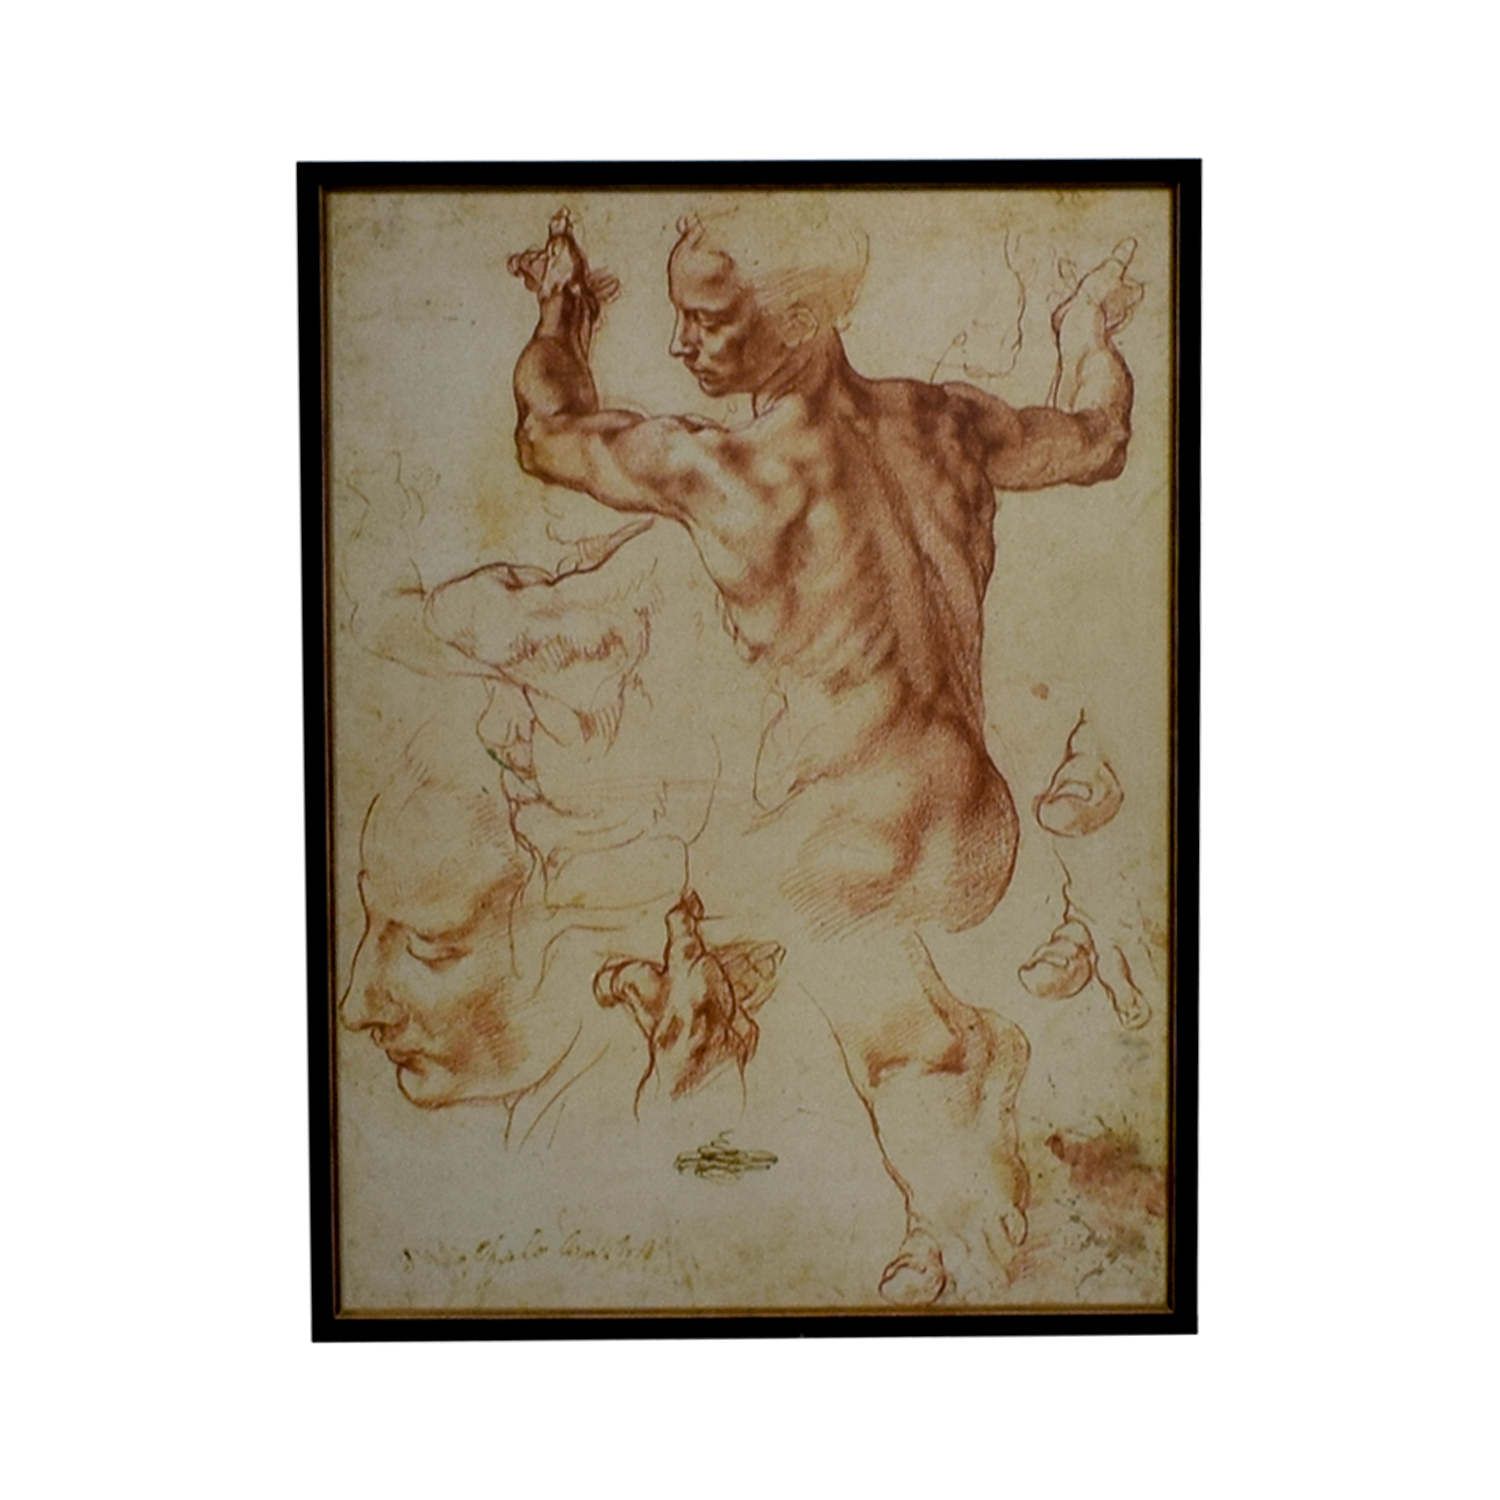 The Framing Workshop The Framing Workshop Leonardo da Vinci Sketch Poster discount